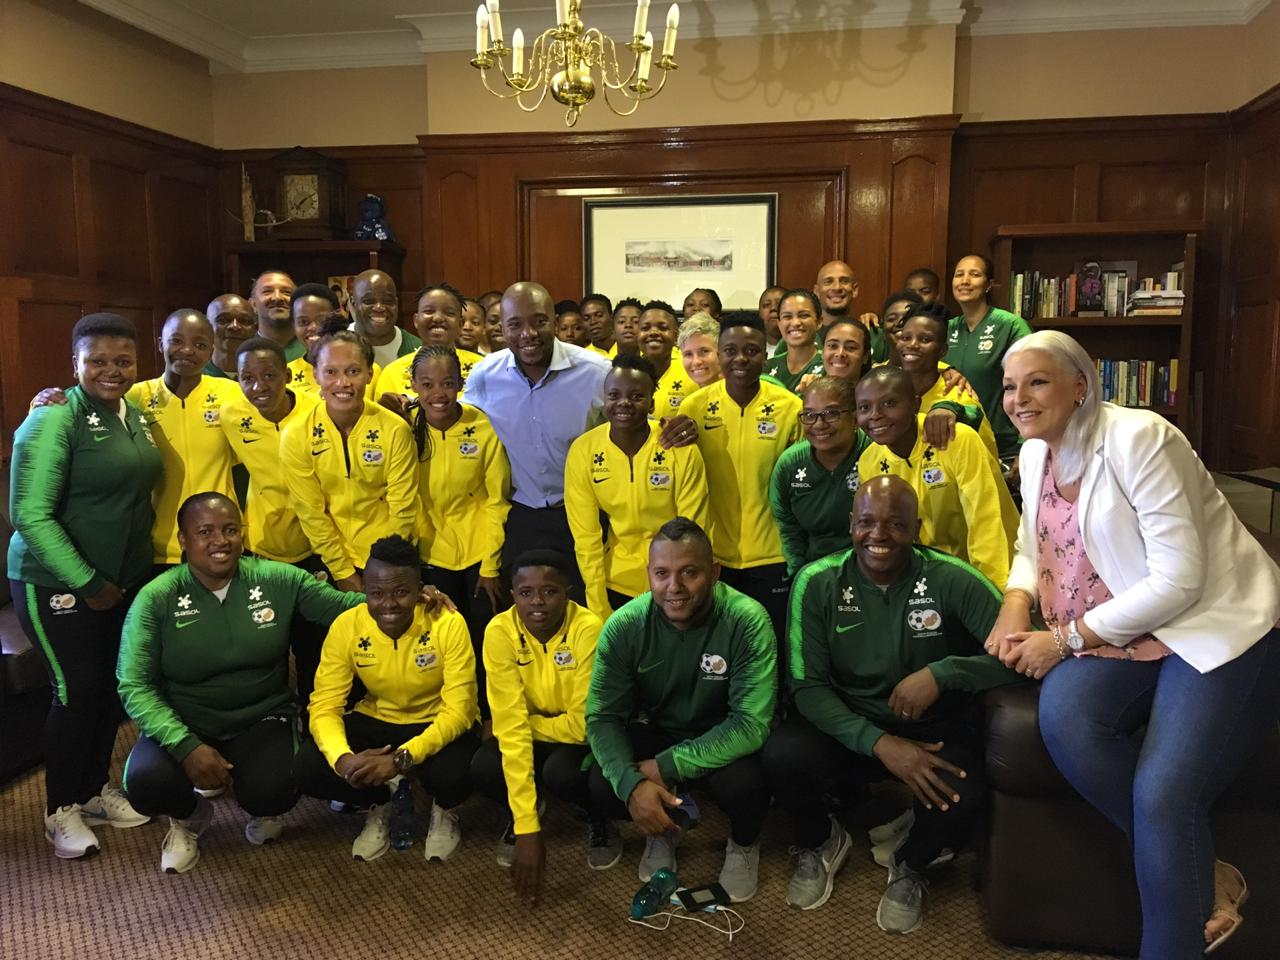 DA takes Banyana Banyana on tour of Parliament